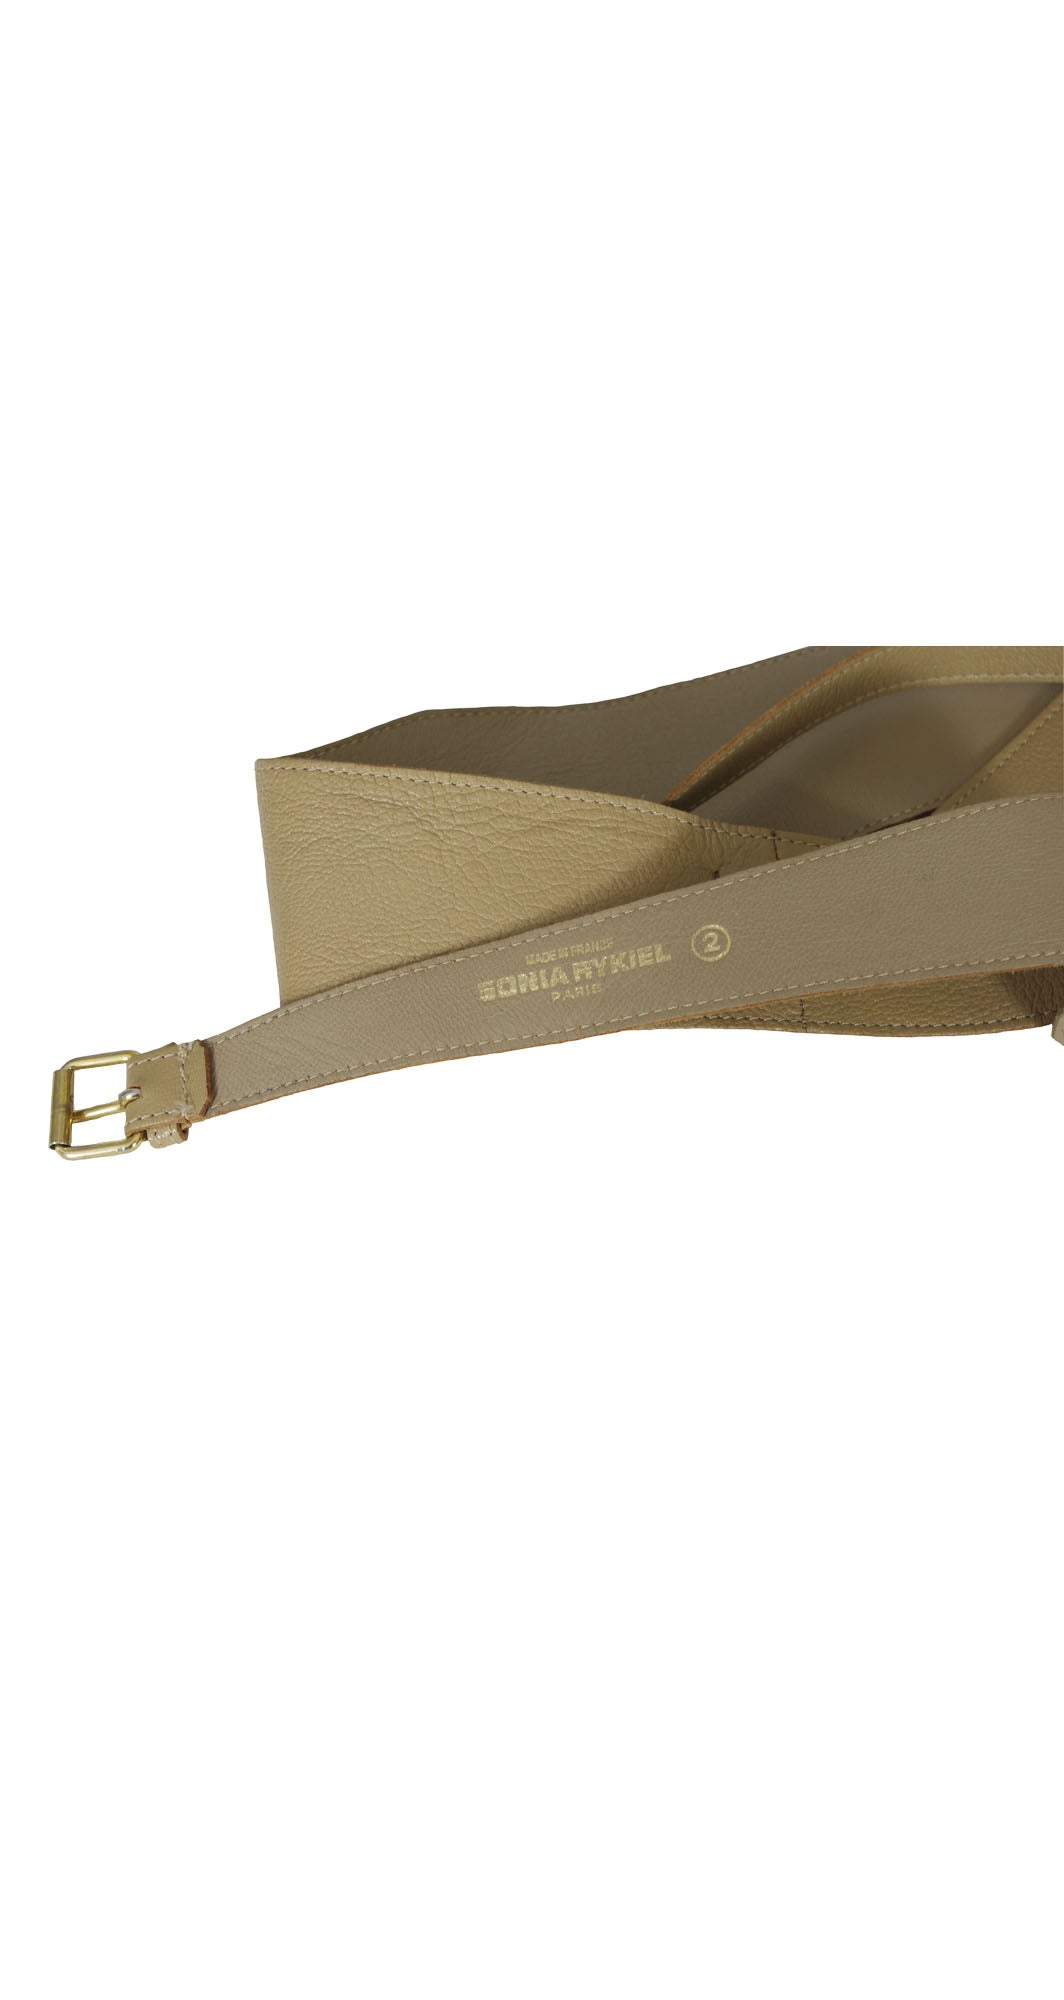 1980s Wide Tan Leather Obi Style Belt